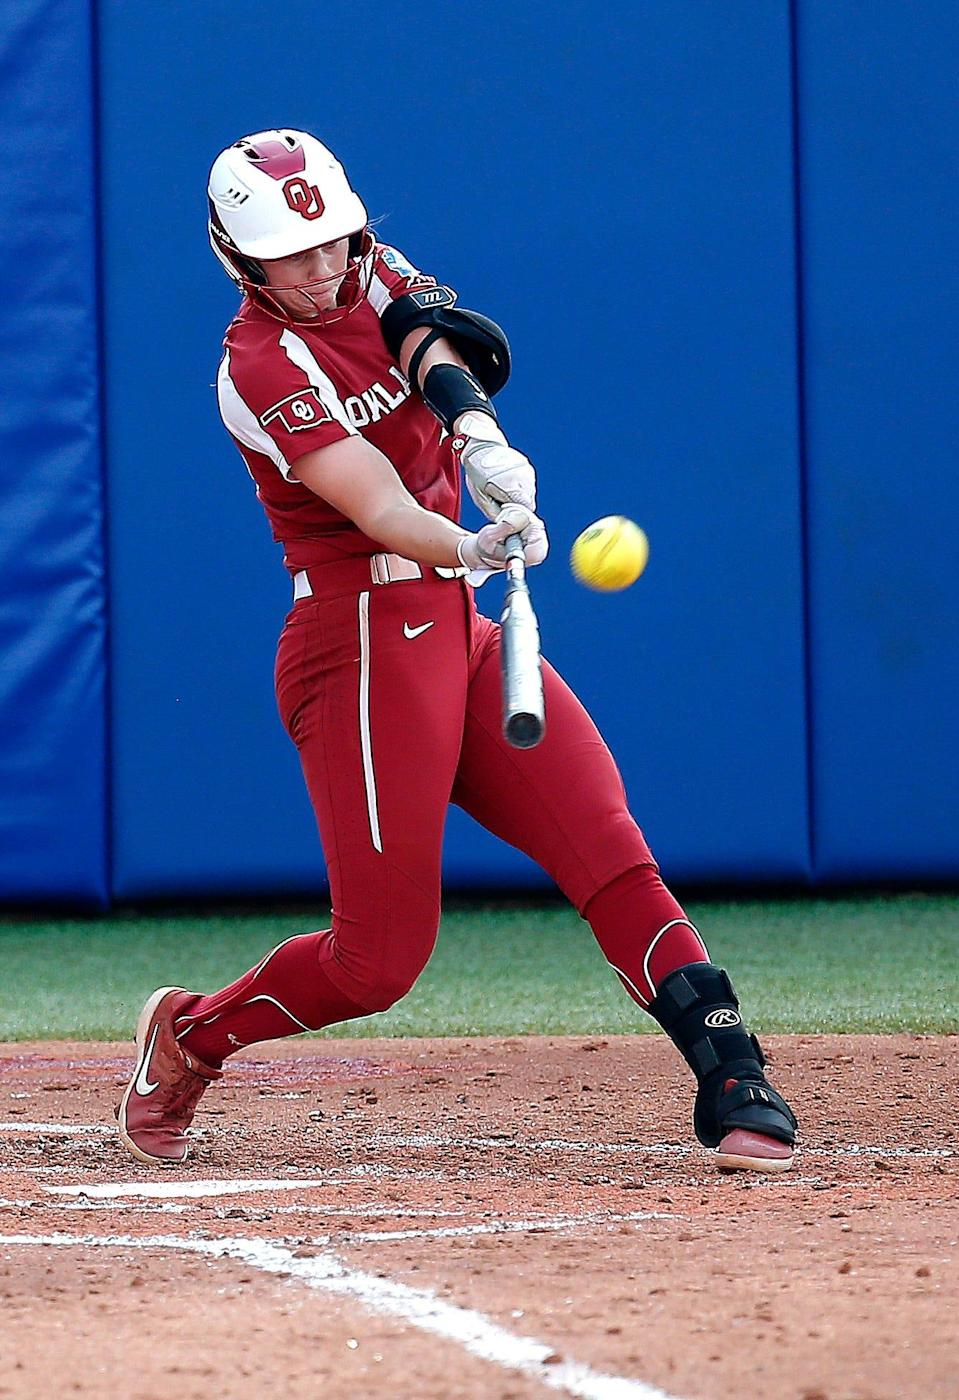 Oklahoma's Jana Johns (20) hits a home run in the third inning during the second game of Women's College World Series championship series between University of Oklahoma (OU) and Florida State University at the USA Softball Hall of Fame Stadium in Oklahoma City, Wednesday, June 9, 2021. Oklahoma won 6-2.